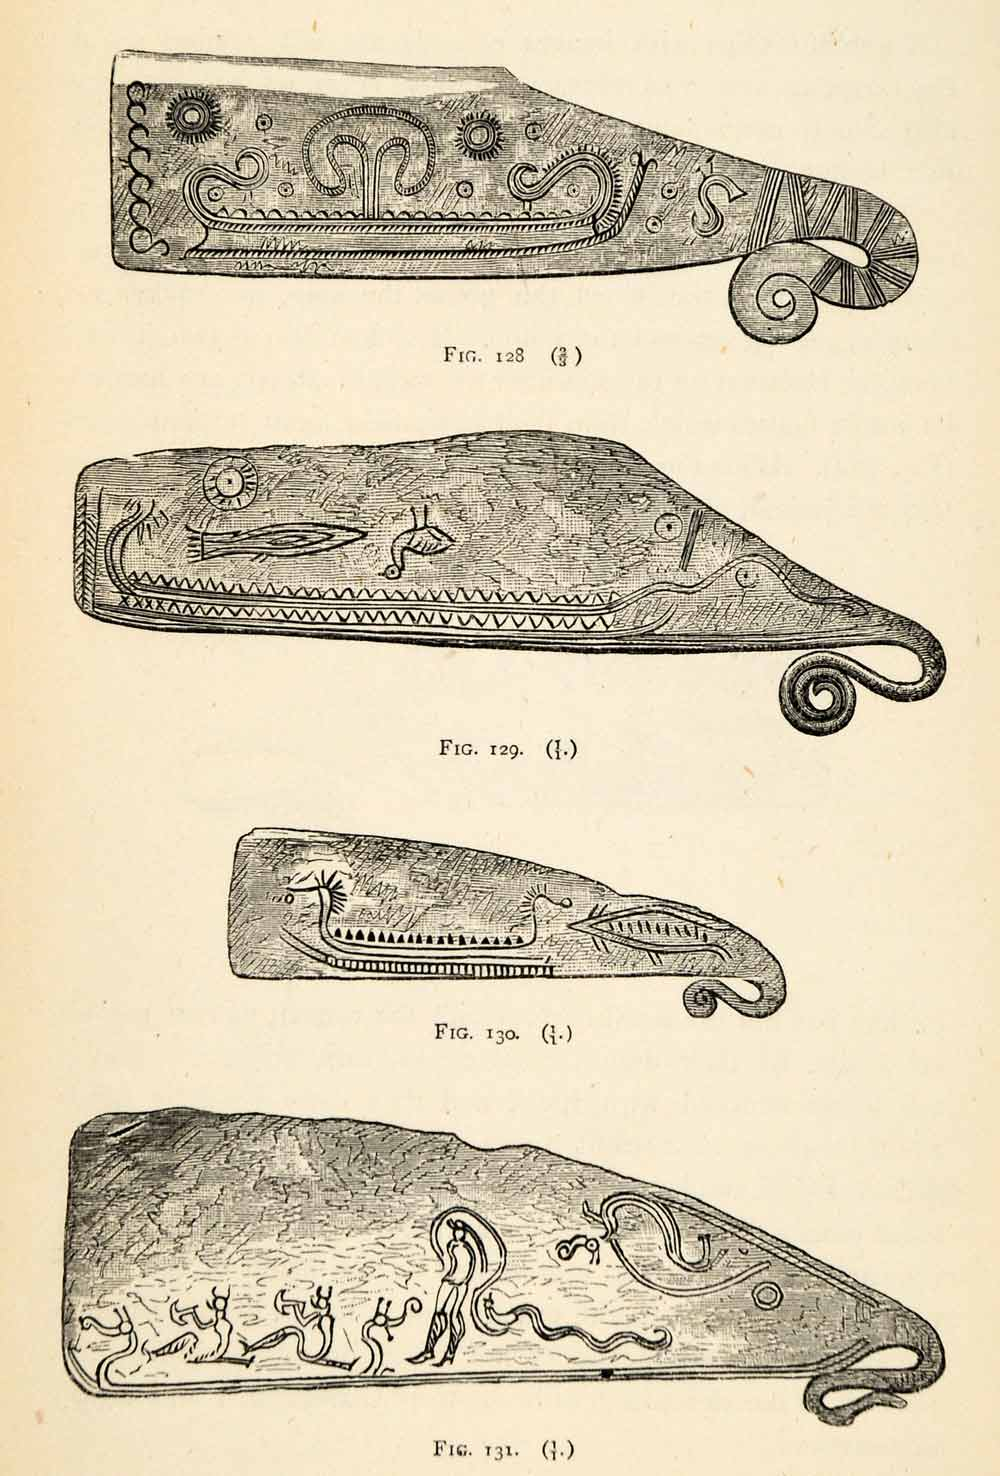 1882 Woodcut Archaeological Weapons Bronze Age Knives Ornaments Patterns XGS8